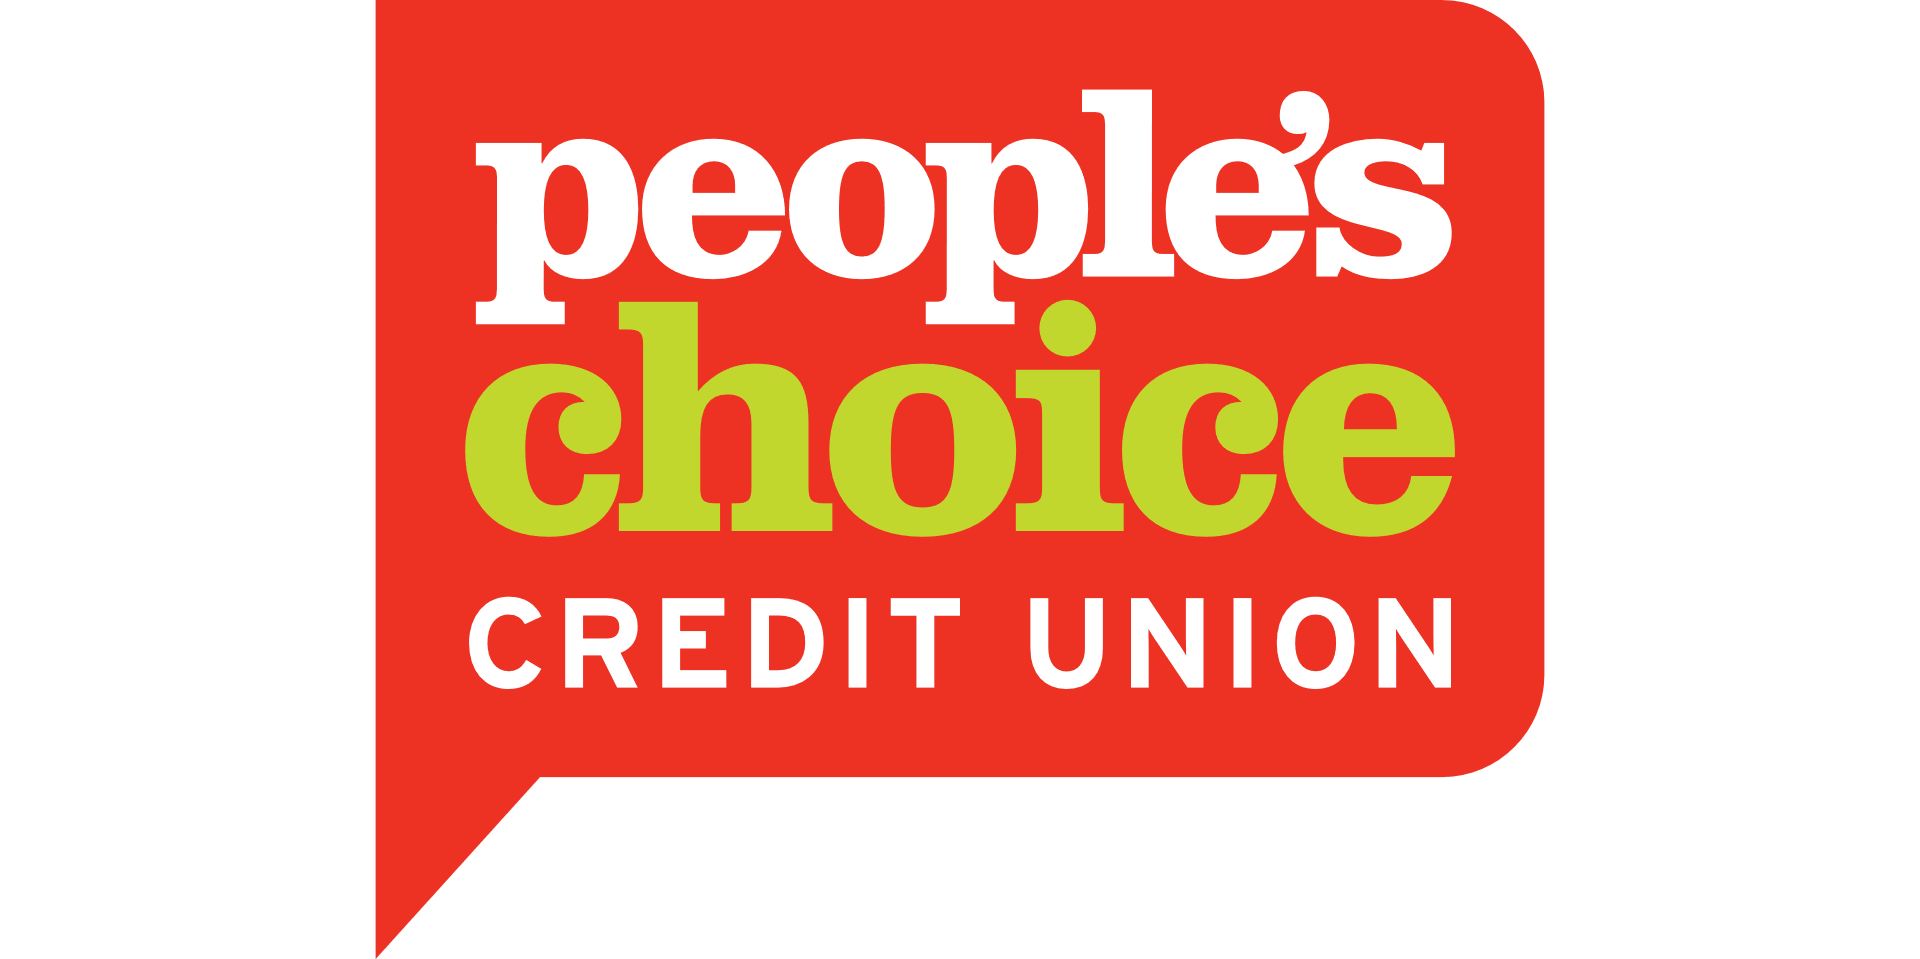 People's Choice Credit Union - Alice Springs, NT 0870 - (01) 3118 1182 | ShowMeLocal.com